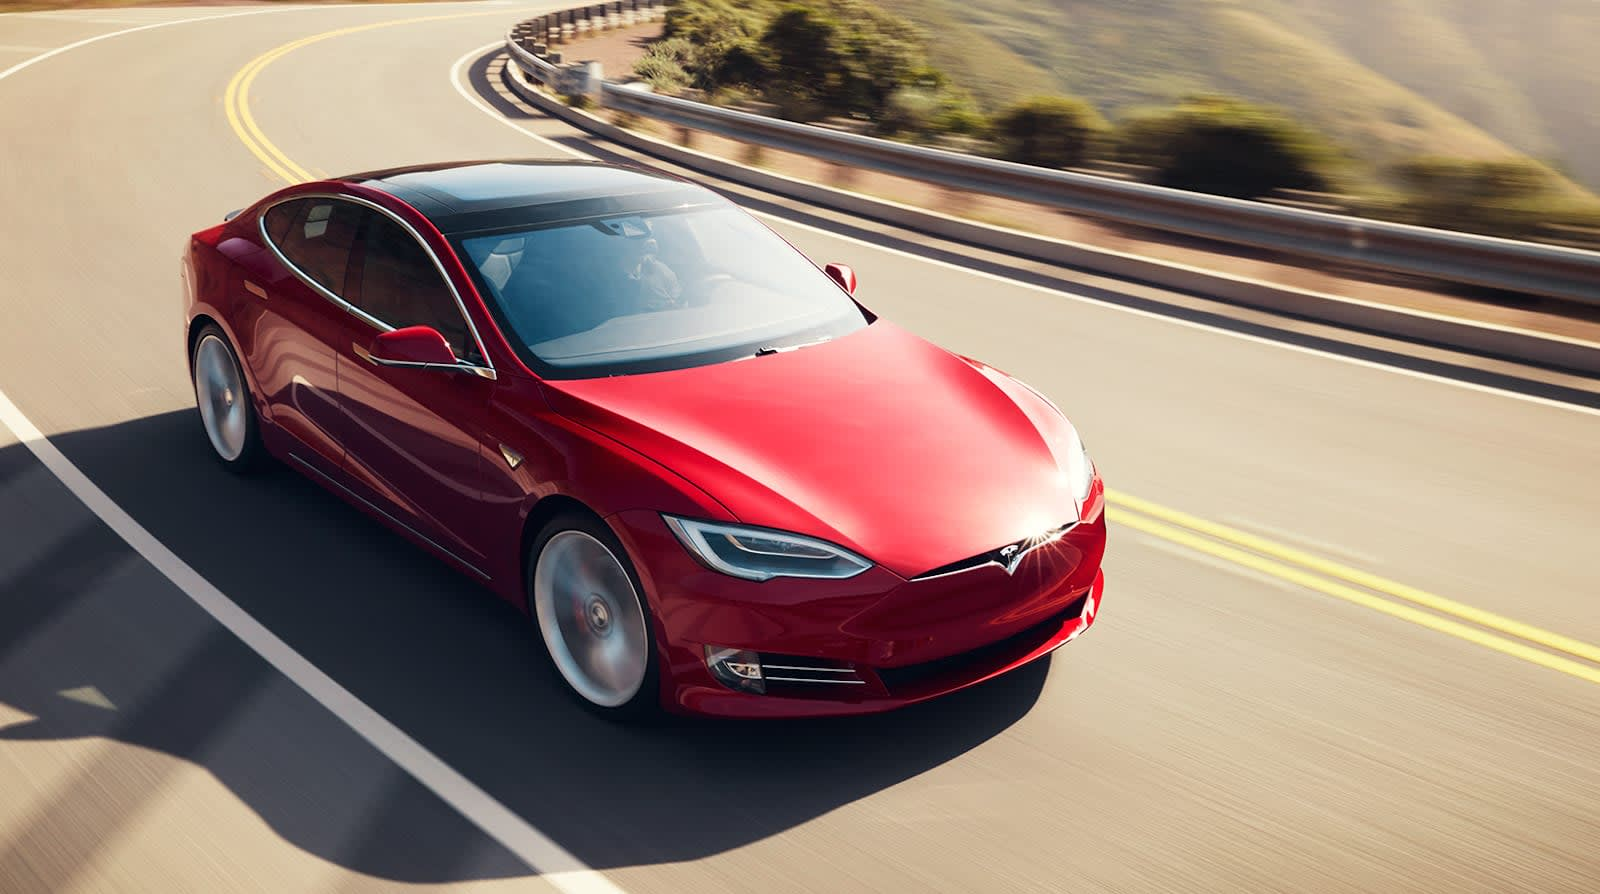 Musk: 'It won't be long' until the Model S goes 400 miles on a charge